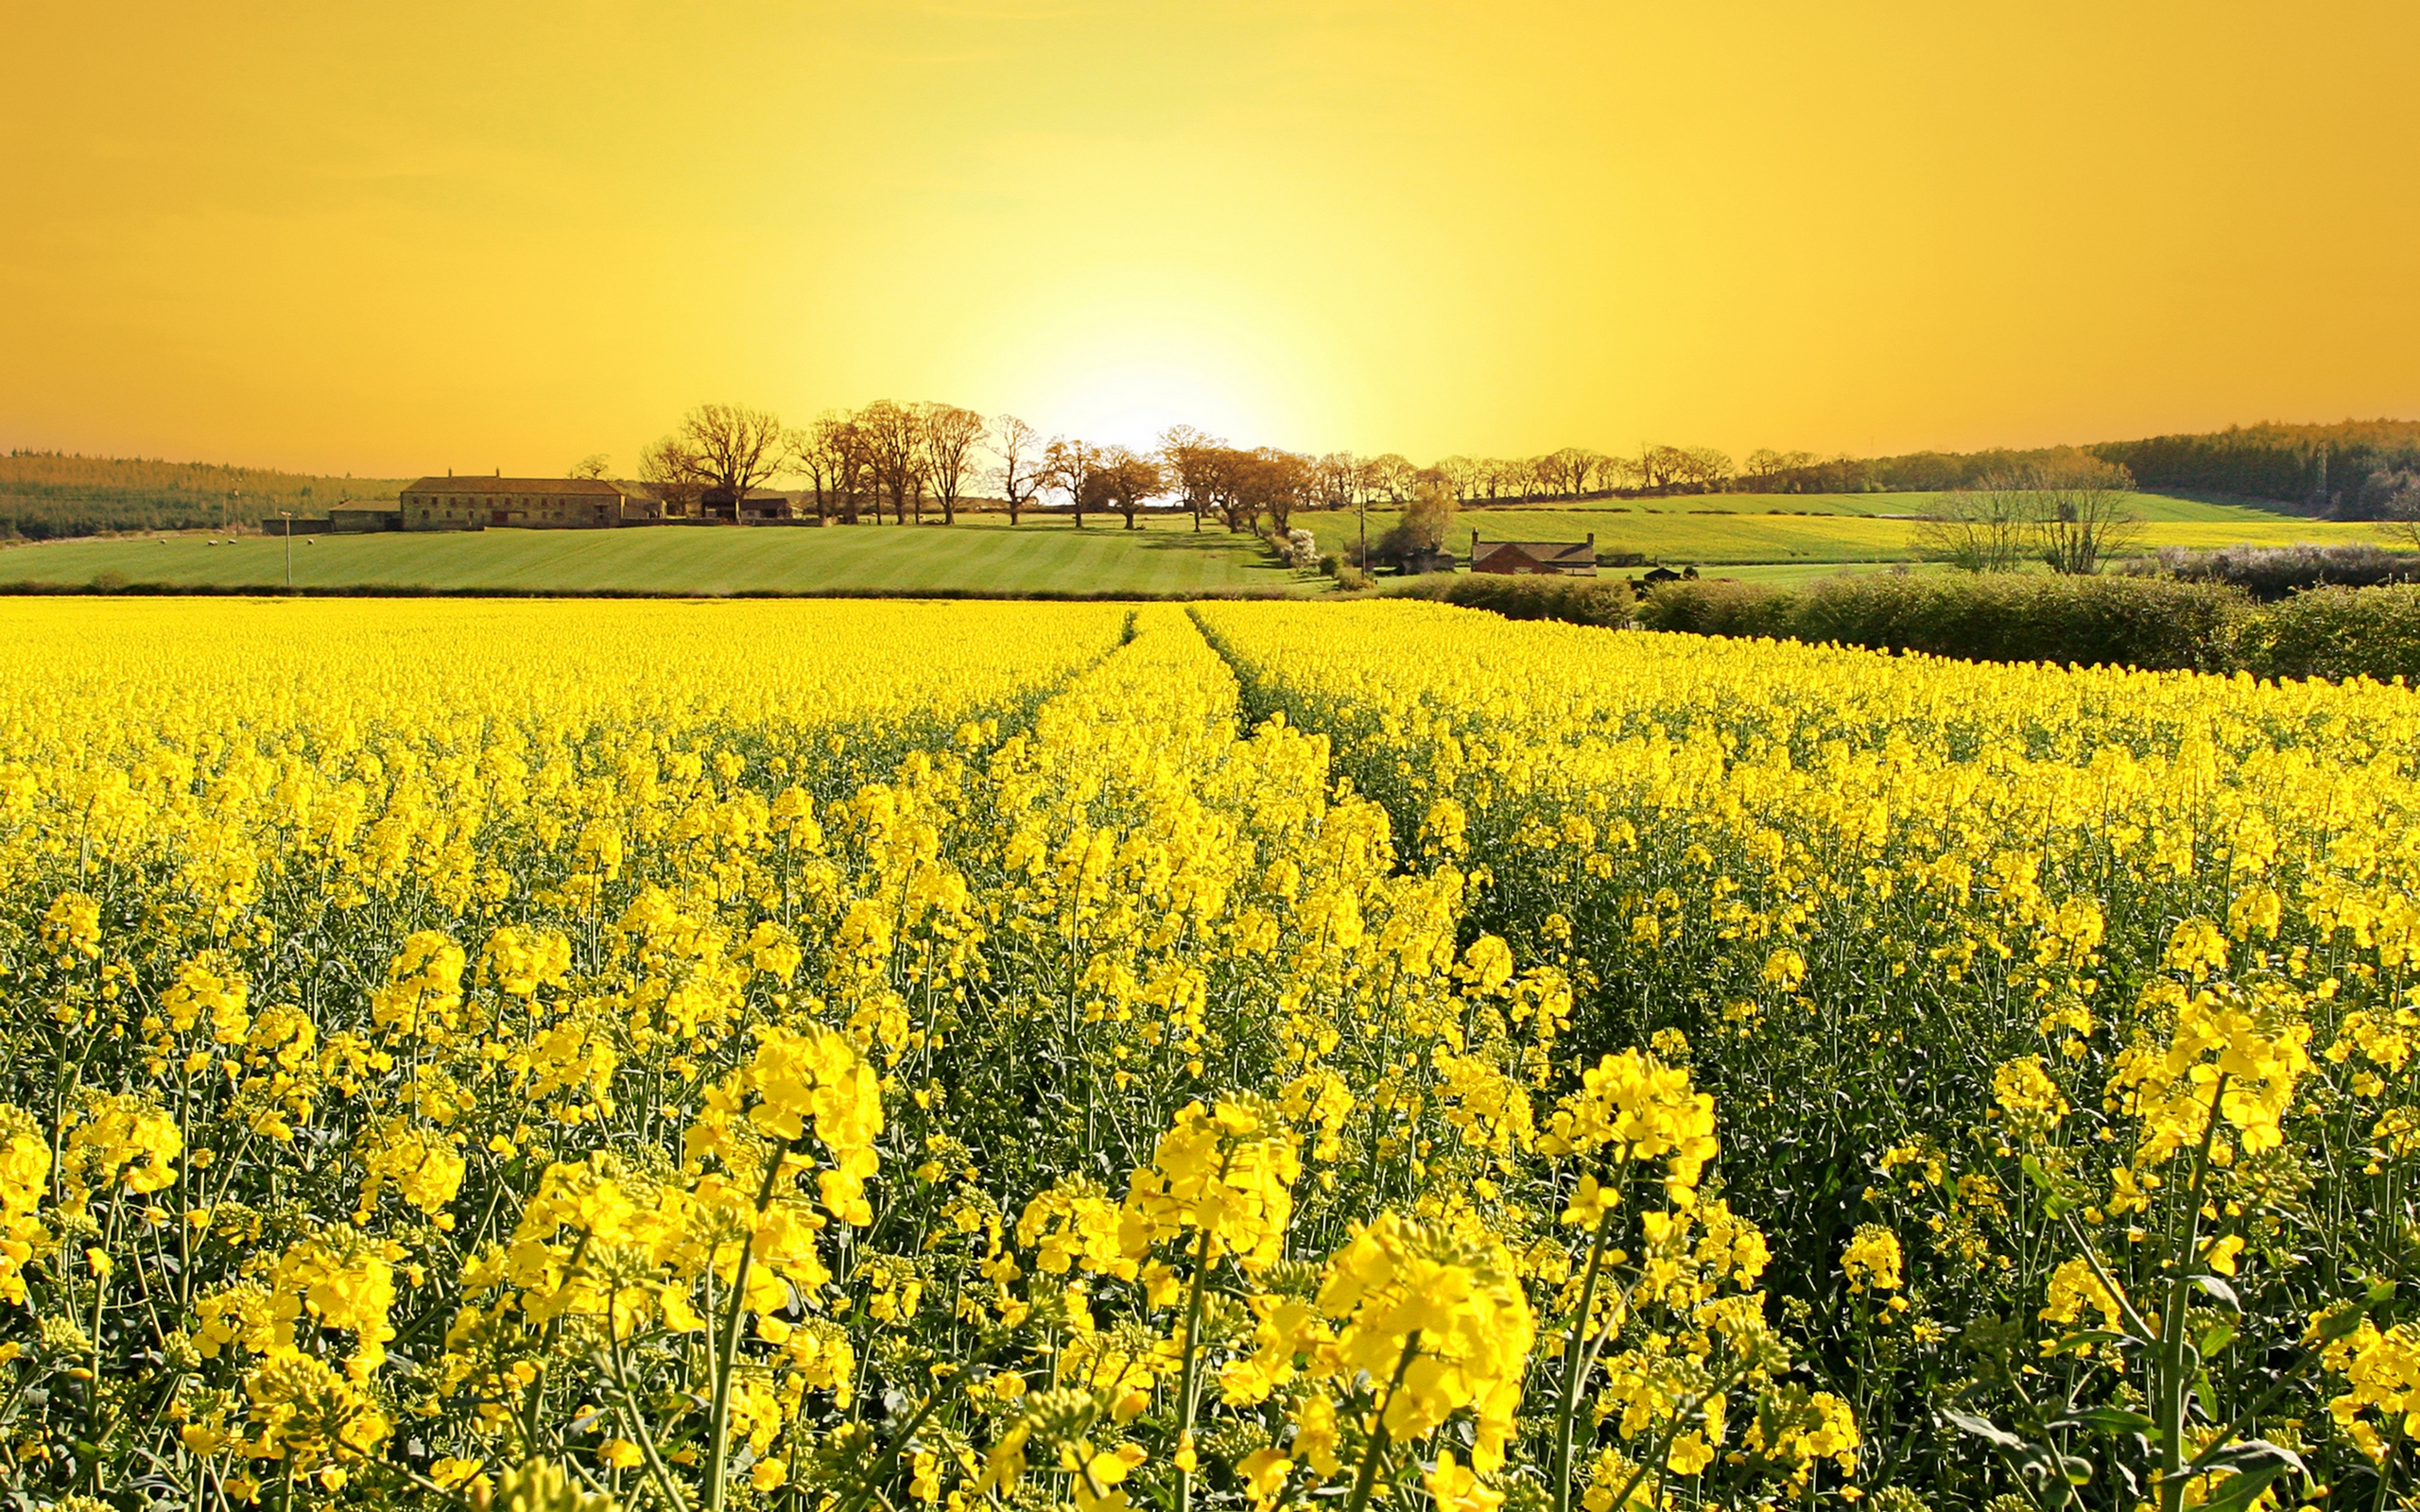 yellow-field-field-flowers-grass-house-landscape-nature-trees ...